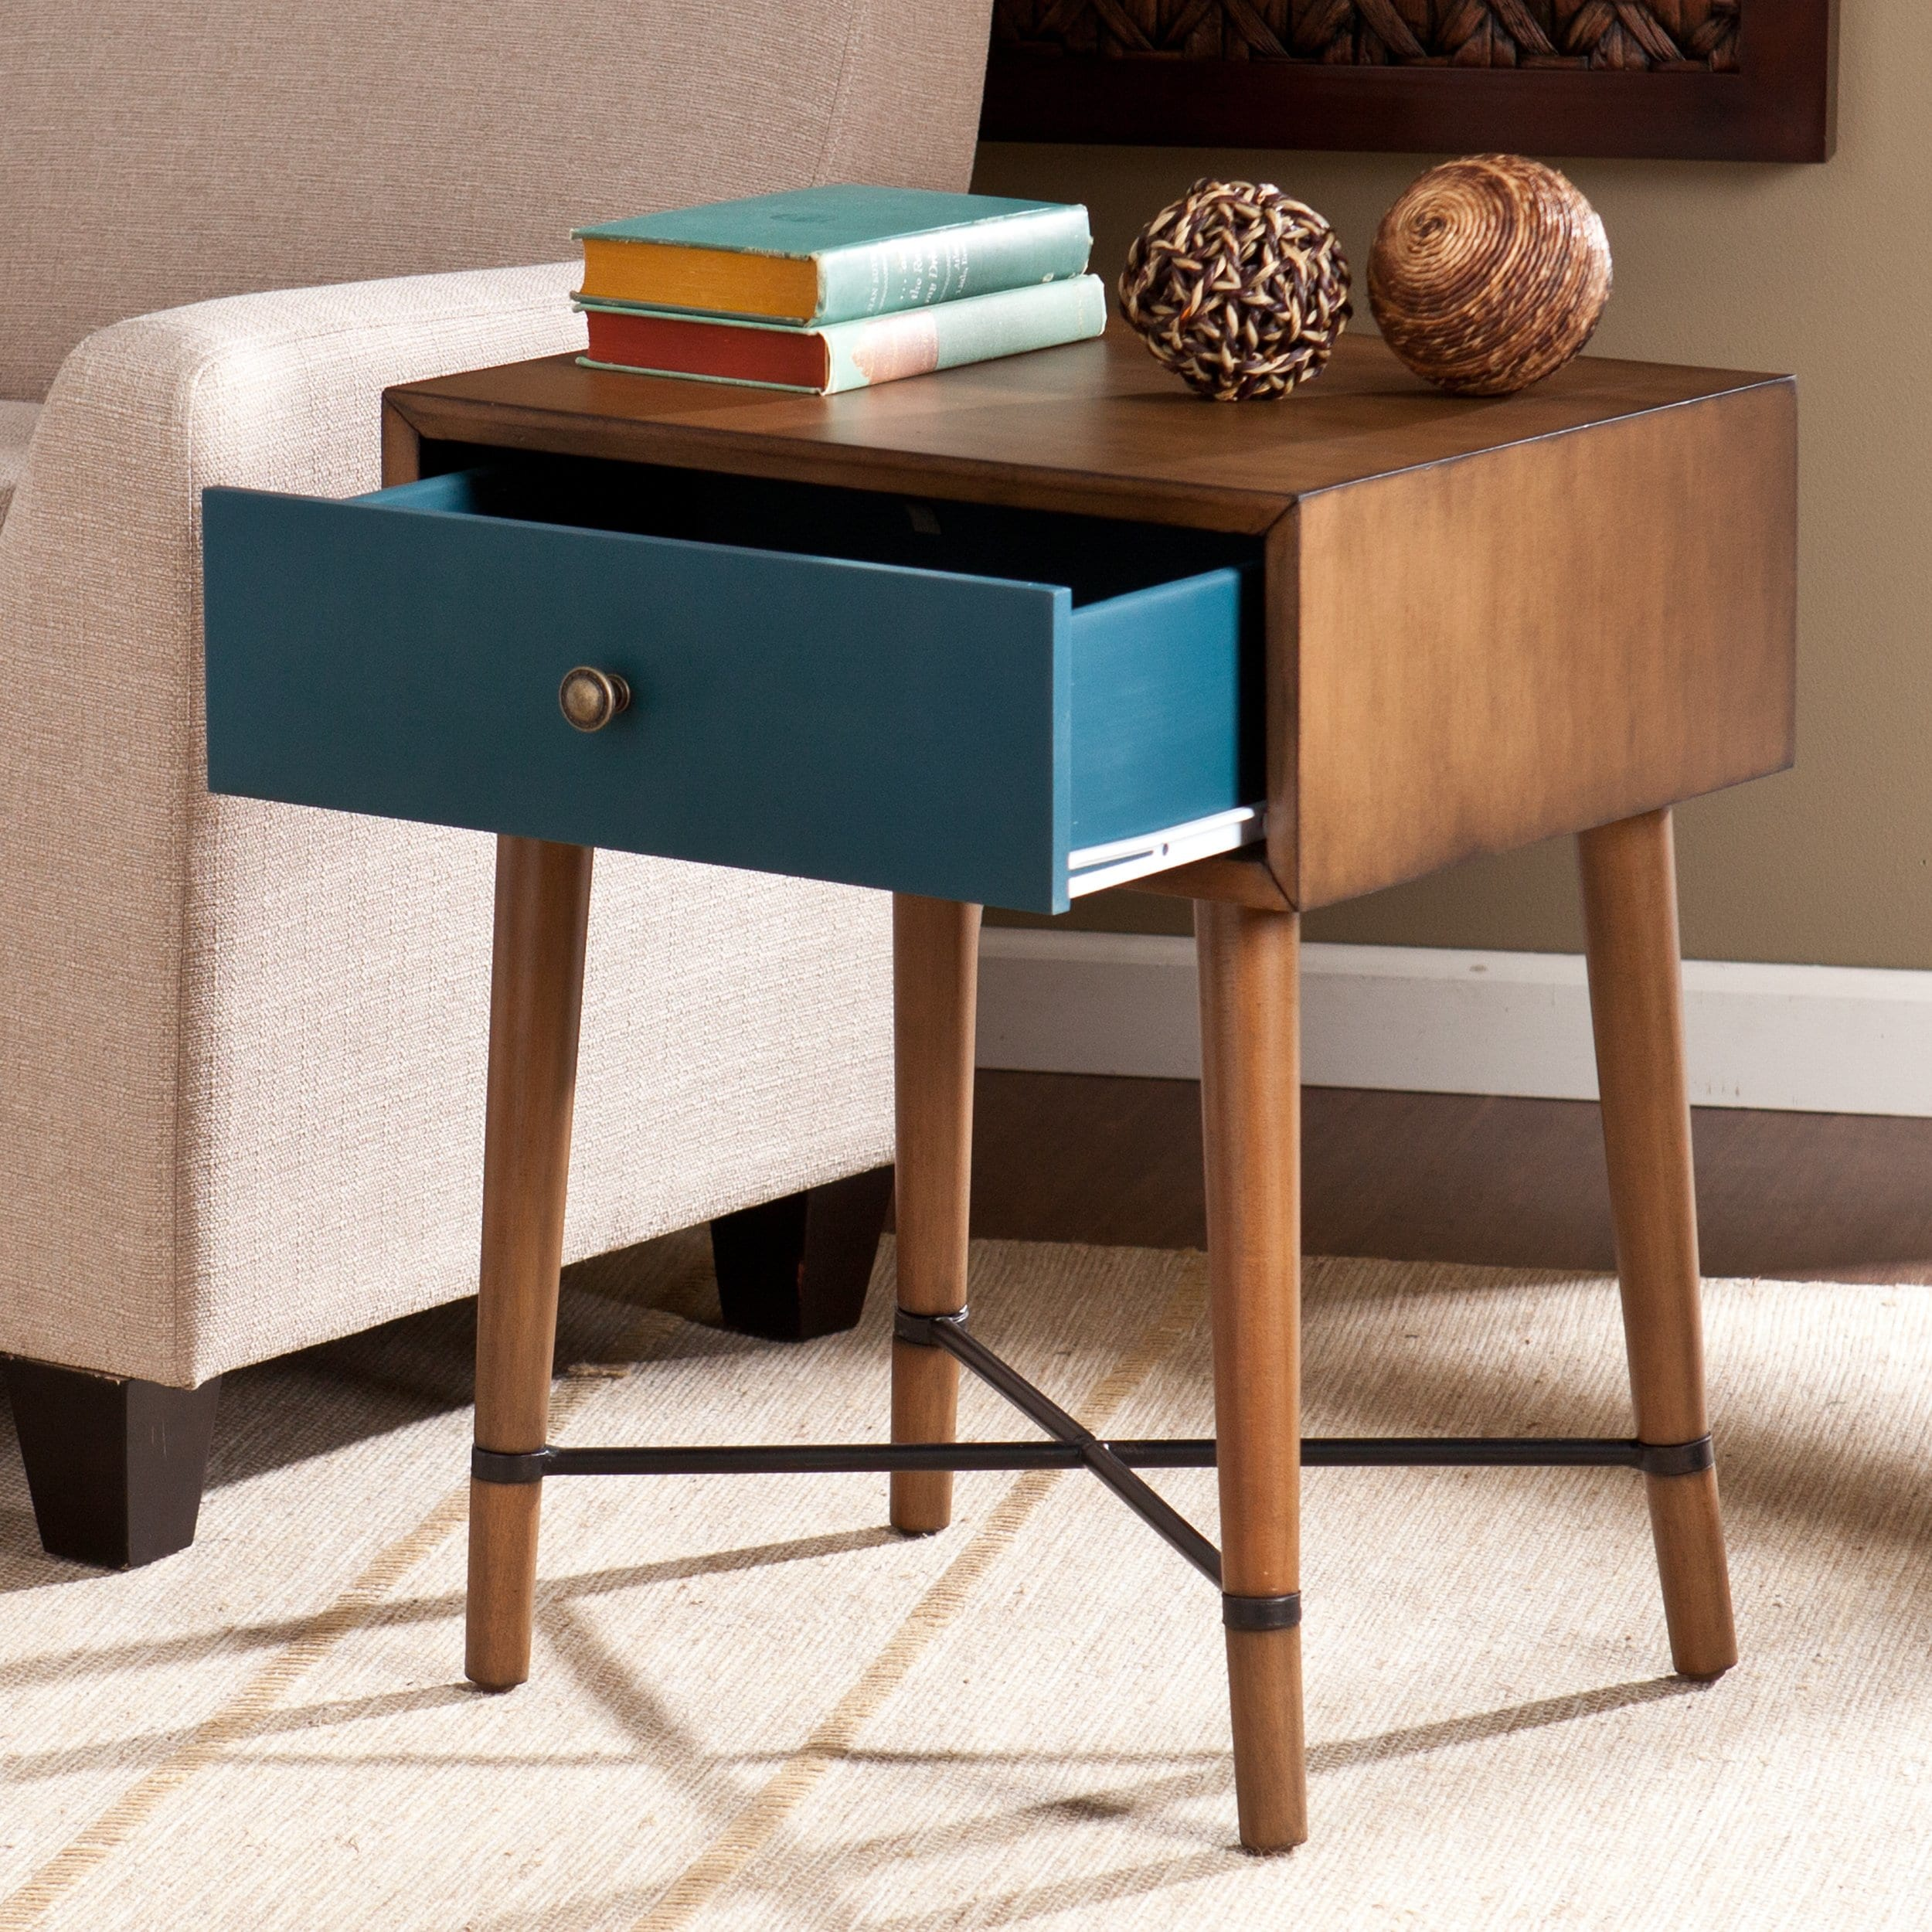 harper blvd niles blue accent table free shipping today aqua inch nightstand chairs for living room black elegant dining furniture sets patio bistro set silver drum side bright